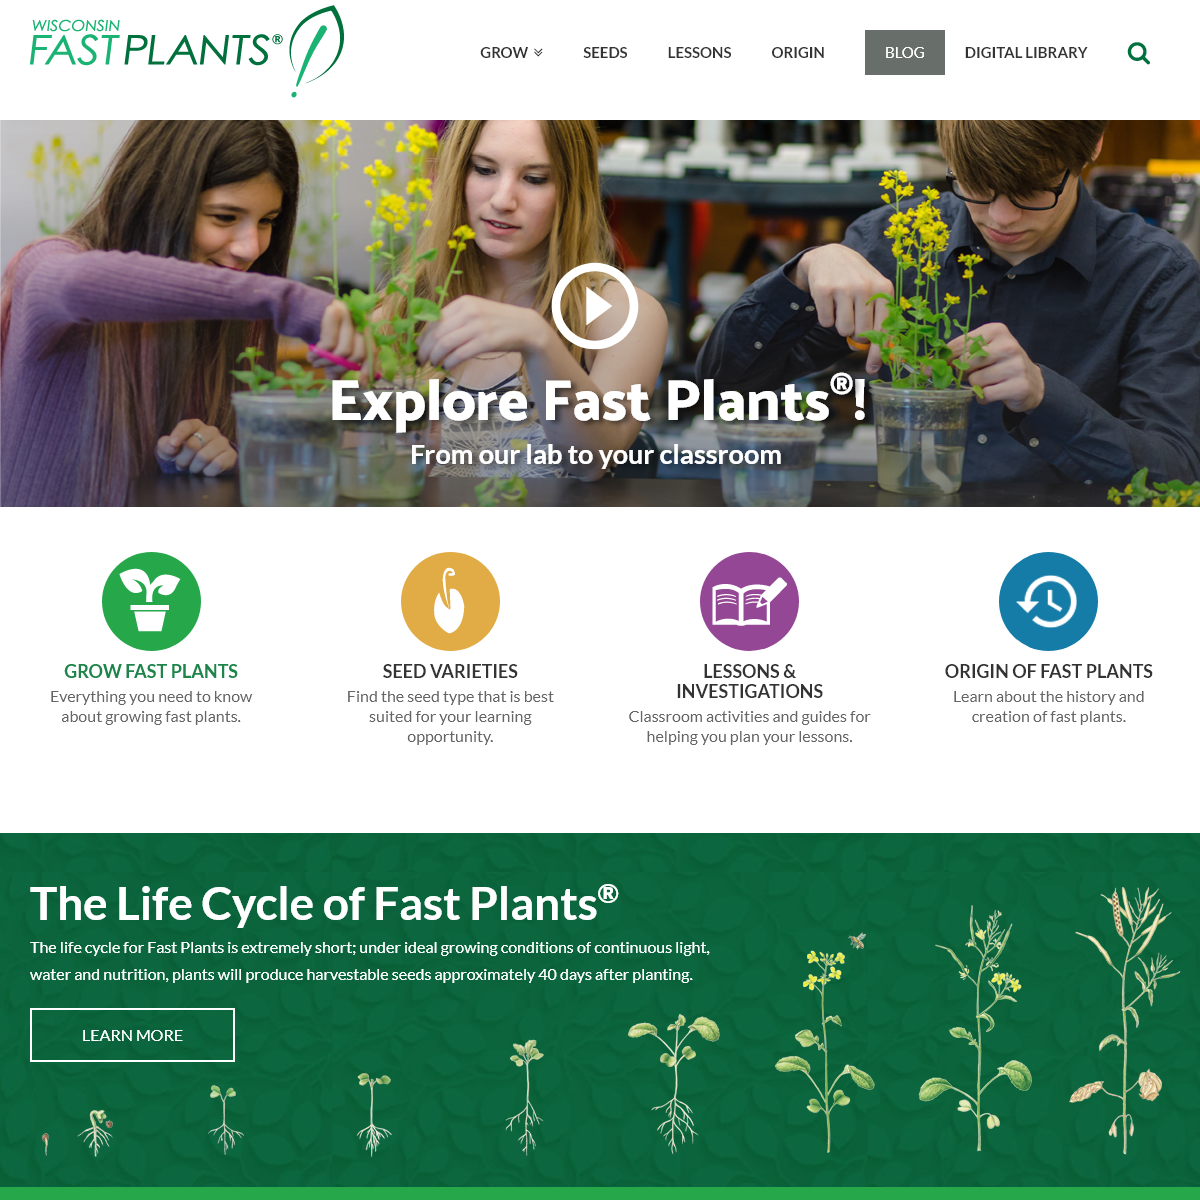 Wisconsin Fast Plants of the University of Wisconsin- Homepage